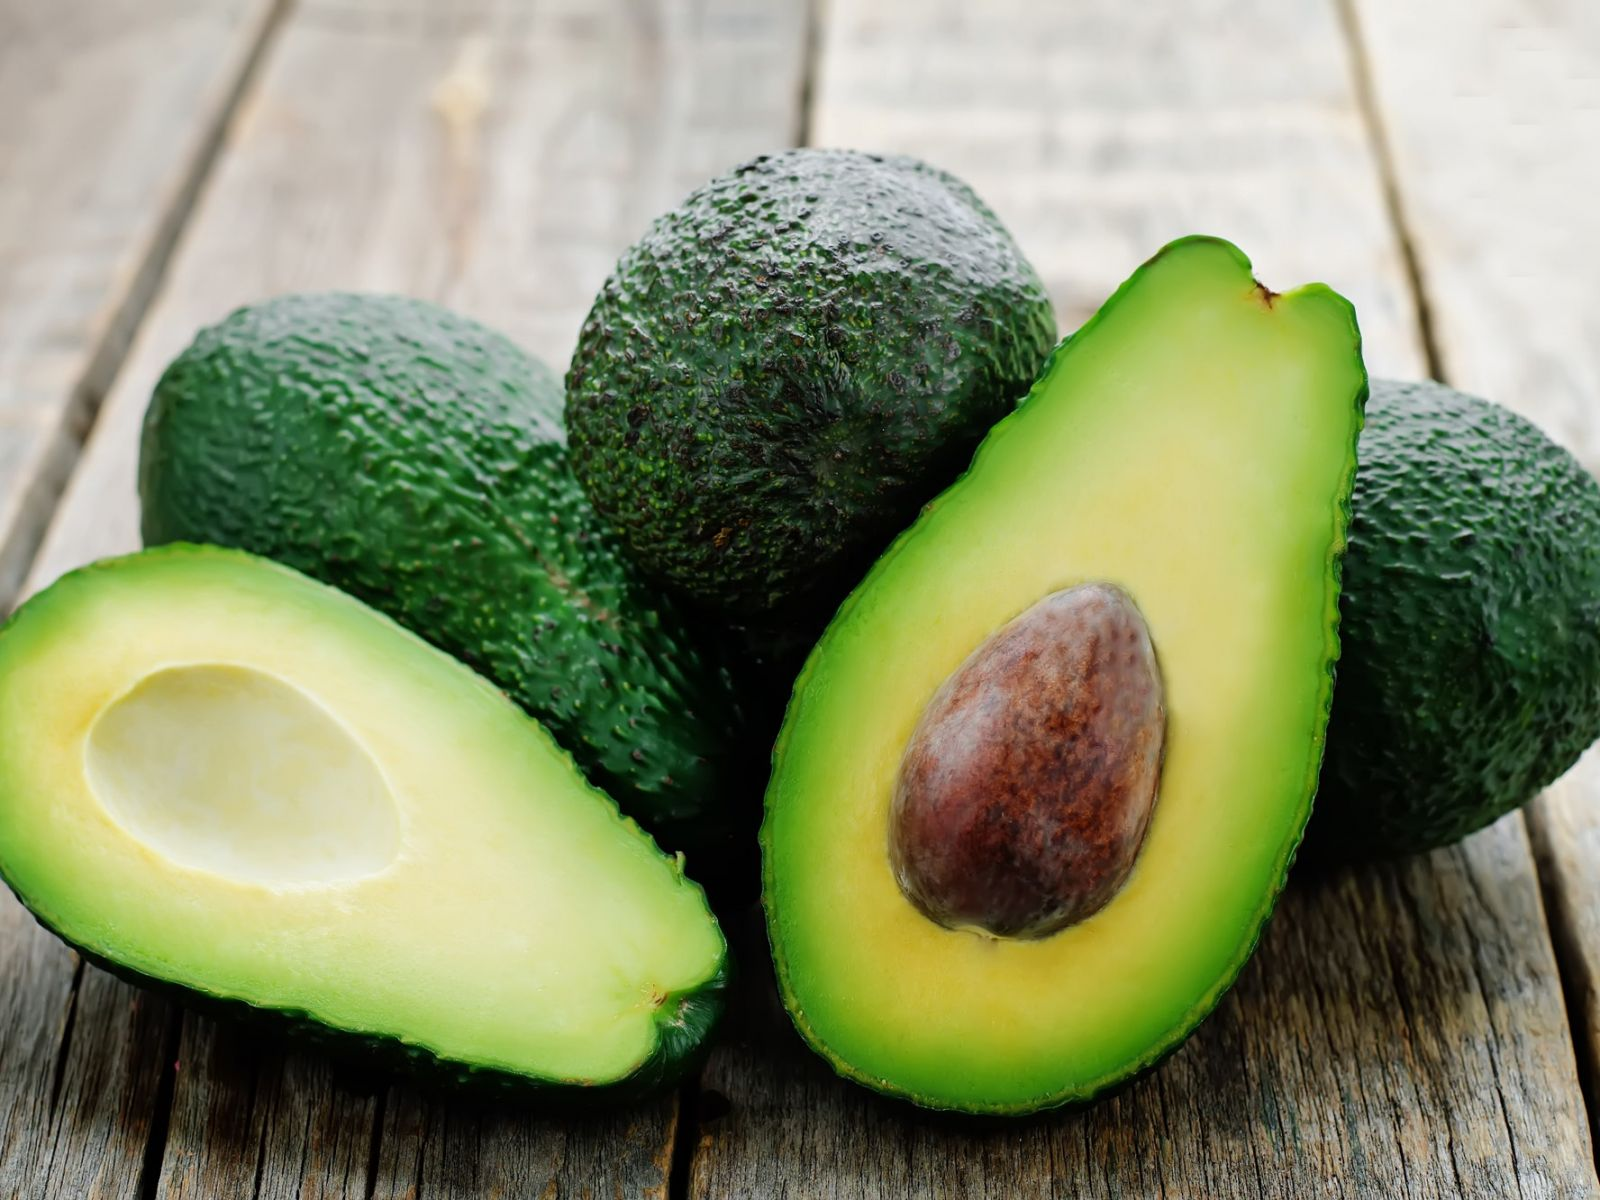 The First Commercial Avocado Farm Established in Georgia